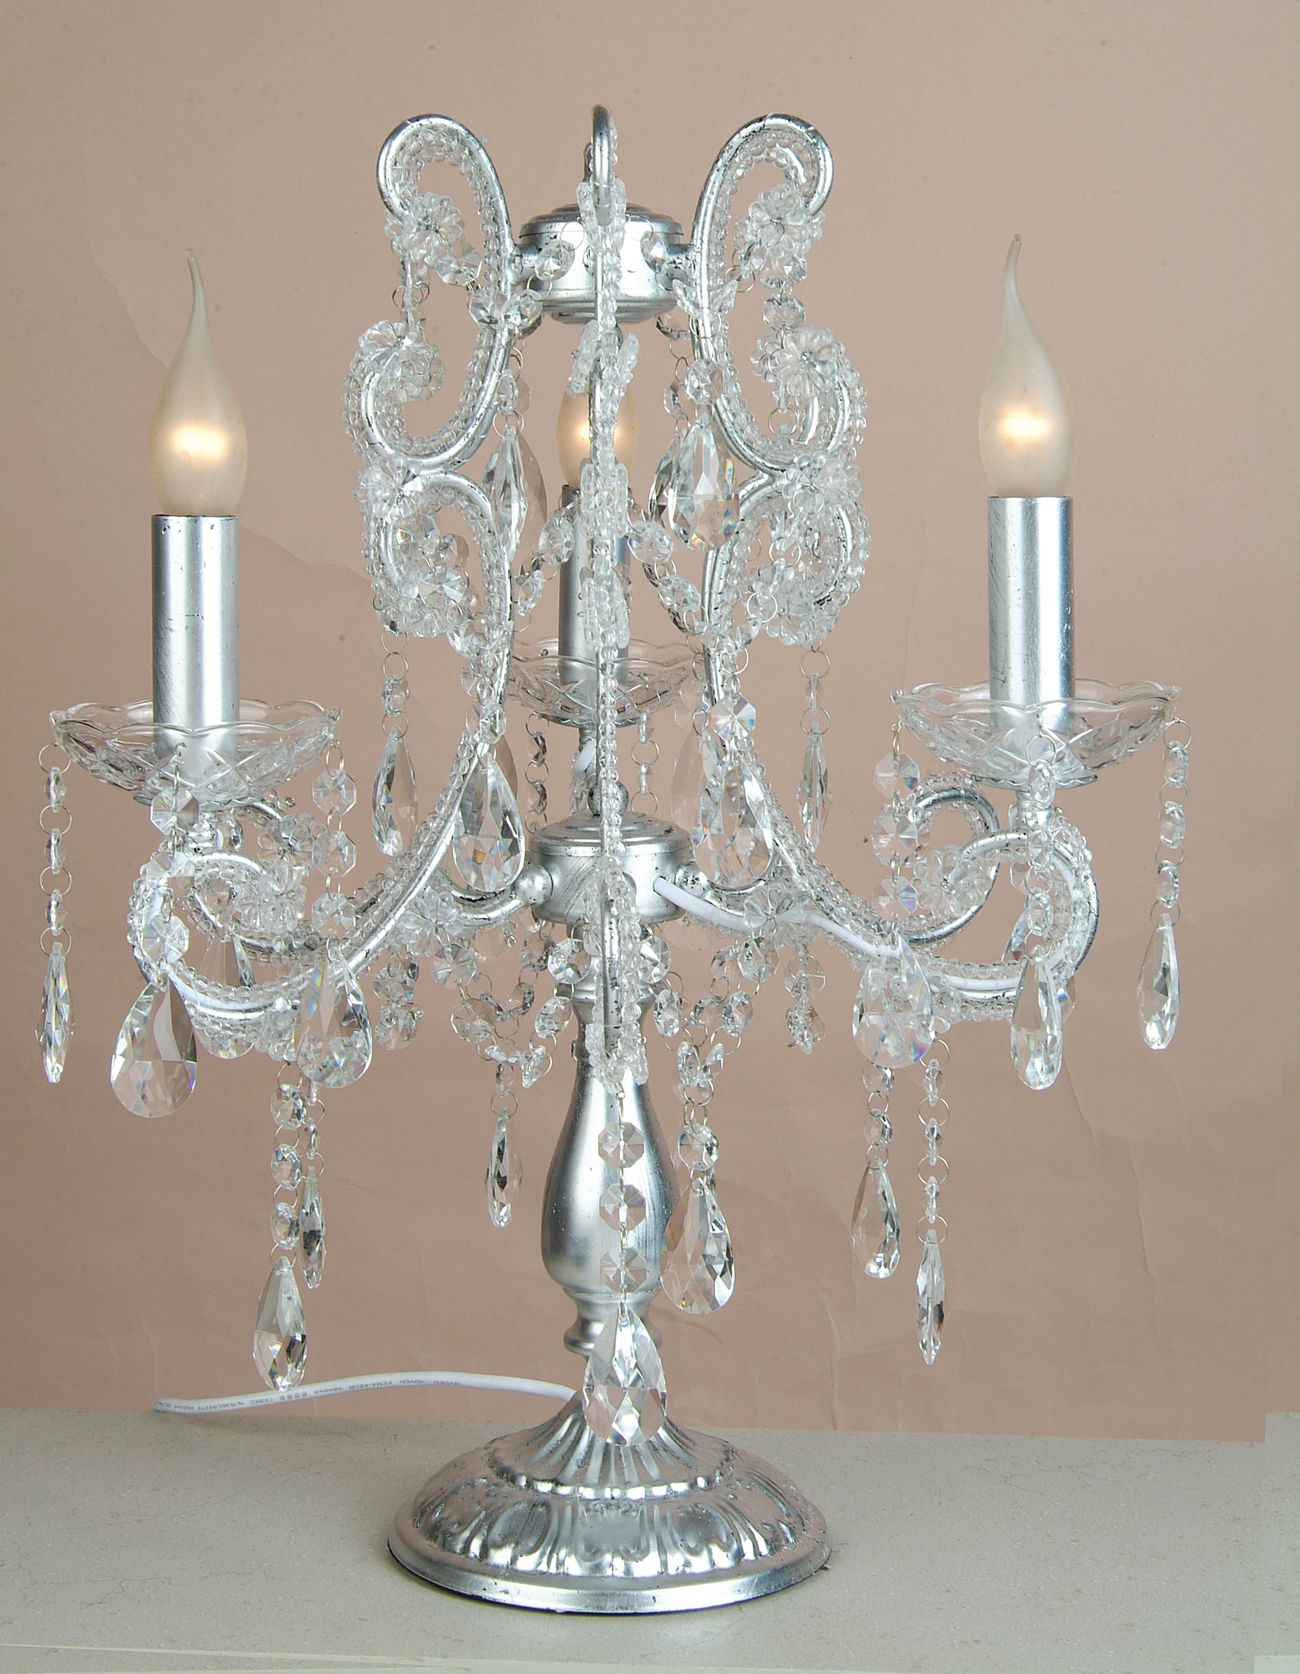 Silver 3 Branch Chandelier Table Lamp Julianne 1003 P Jpg